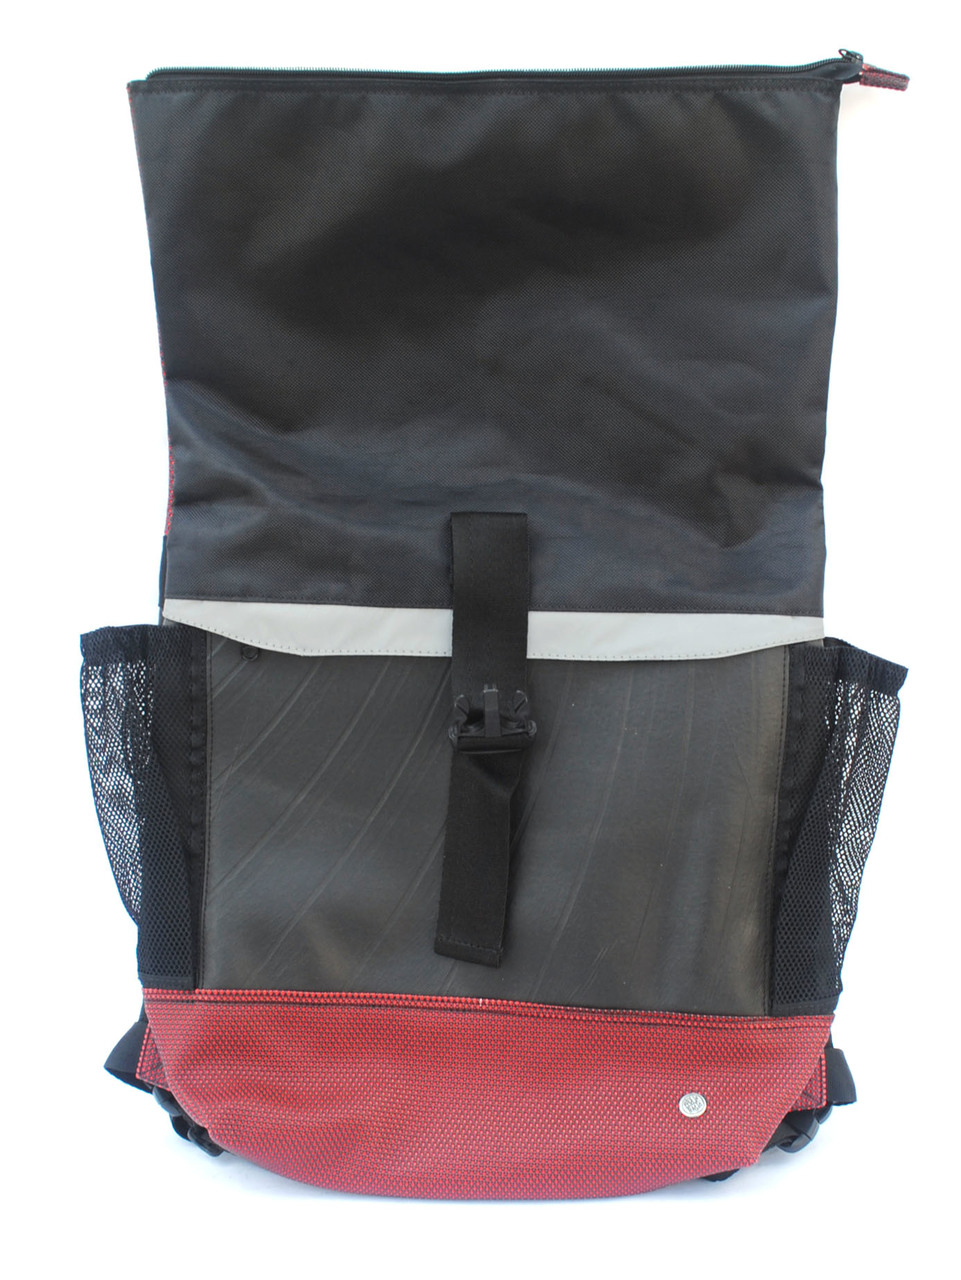 Optimus Bike Backpack - Red